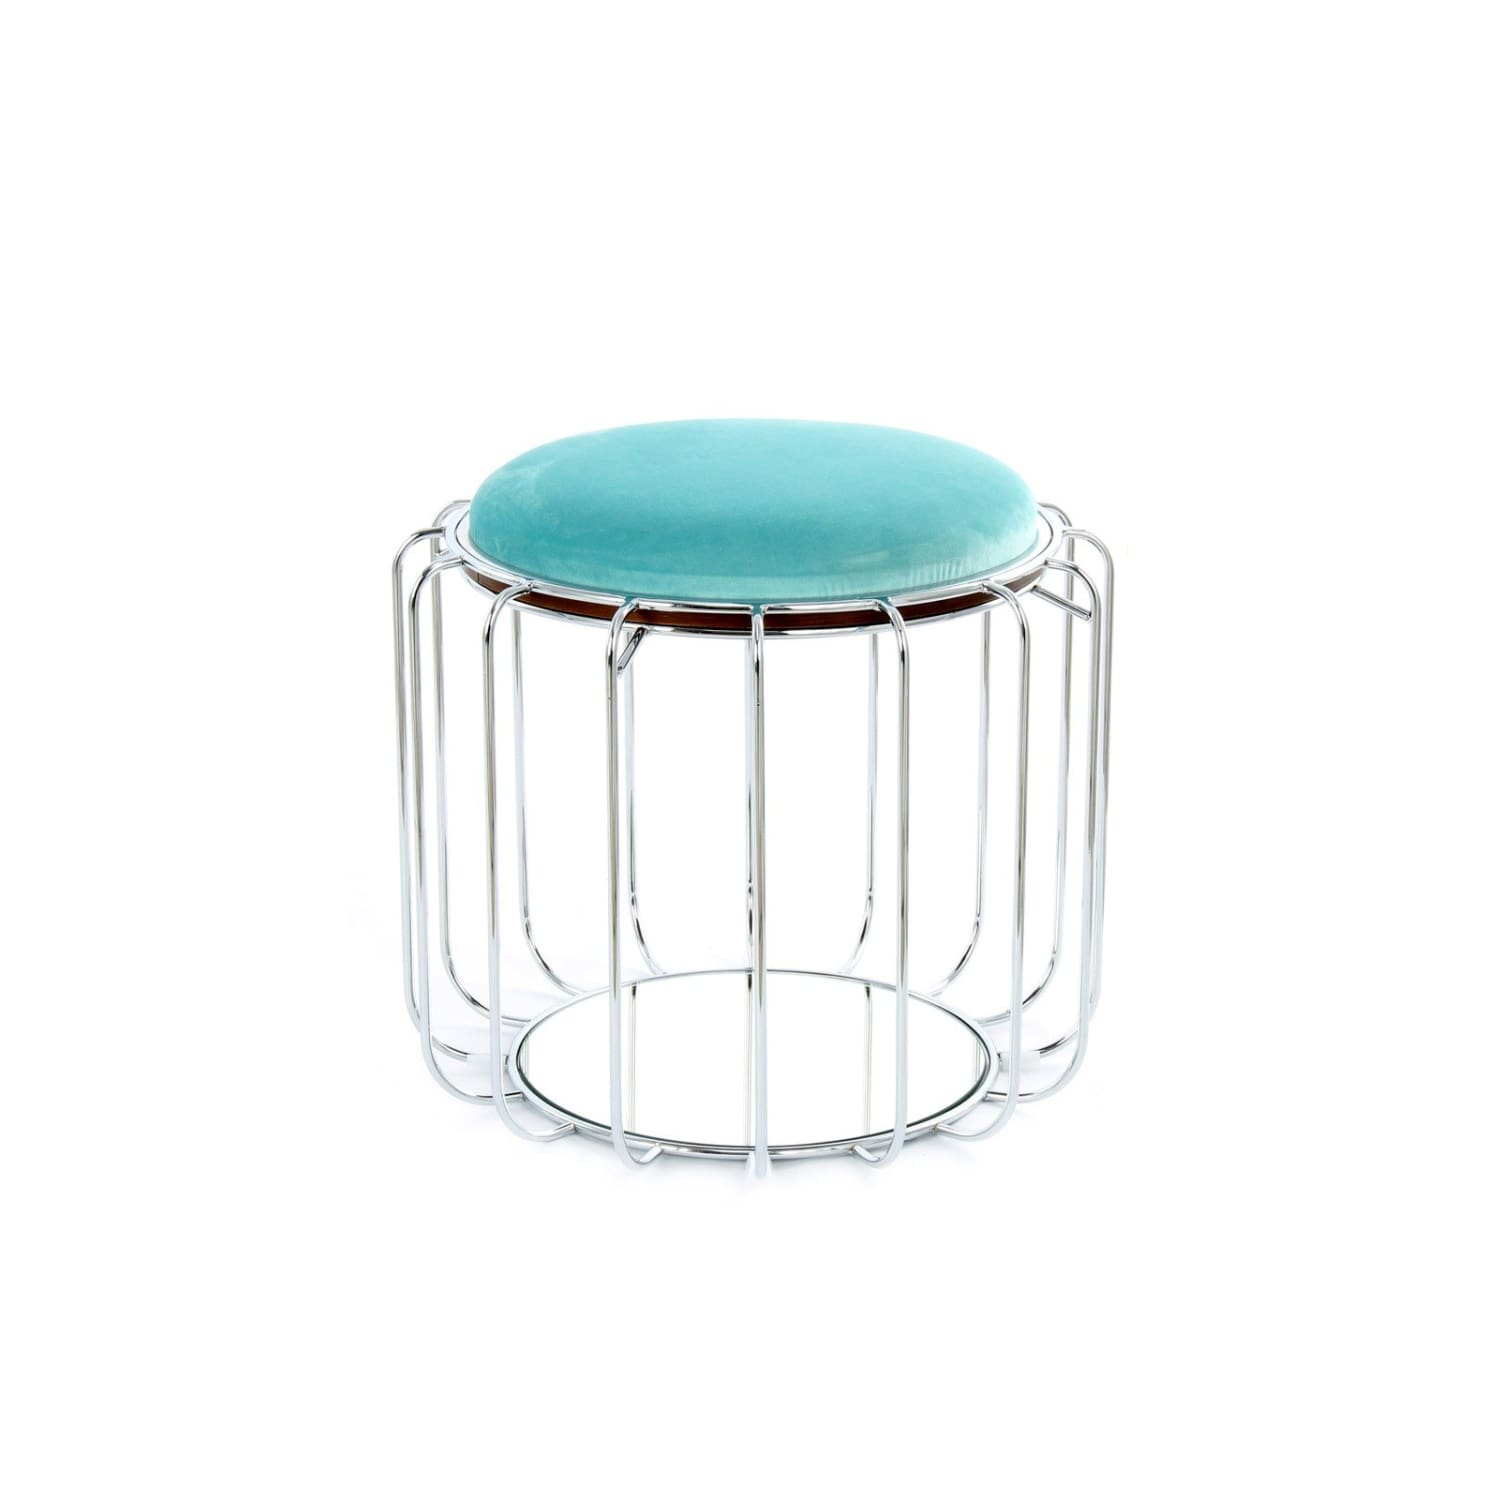 Table d'appoint & Pouf - 2 IN 1 - Comfortable 110 Menthe - Argent